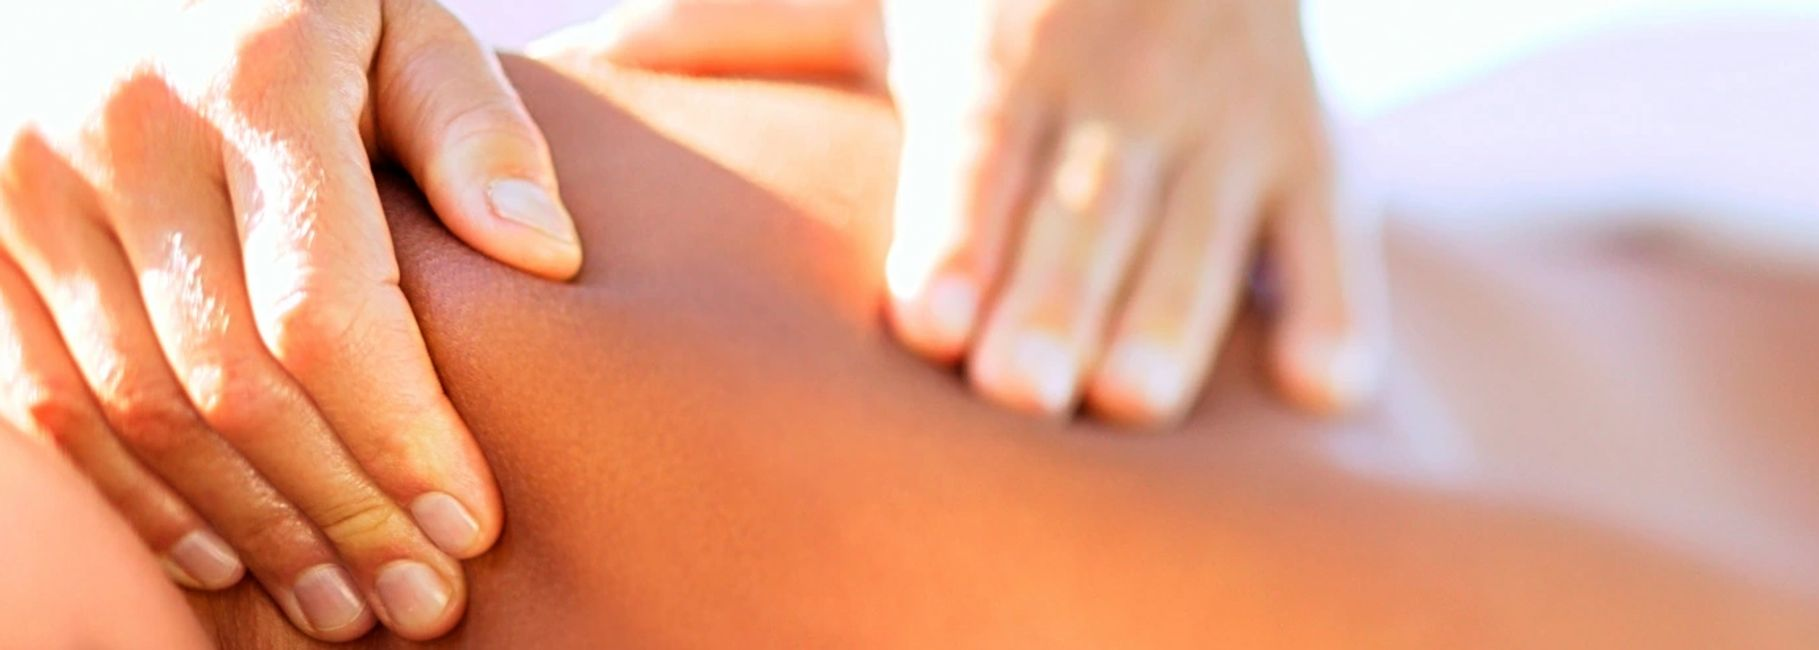 Massage Membership at The Spa, Calistoga membership, Massage Deals, Napa Valley, Calistoga